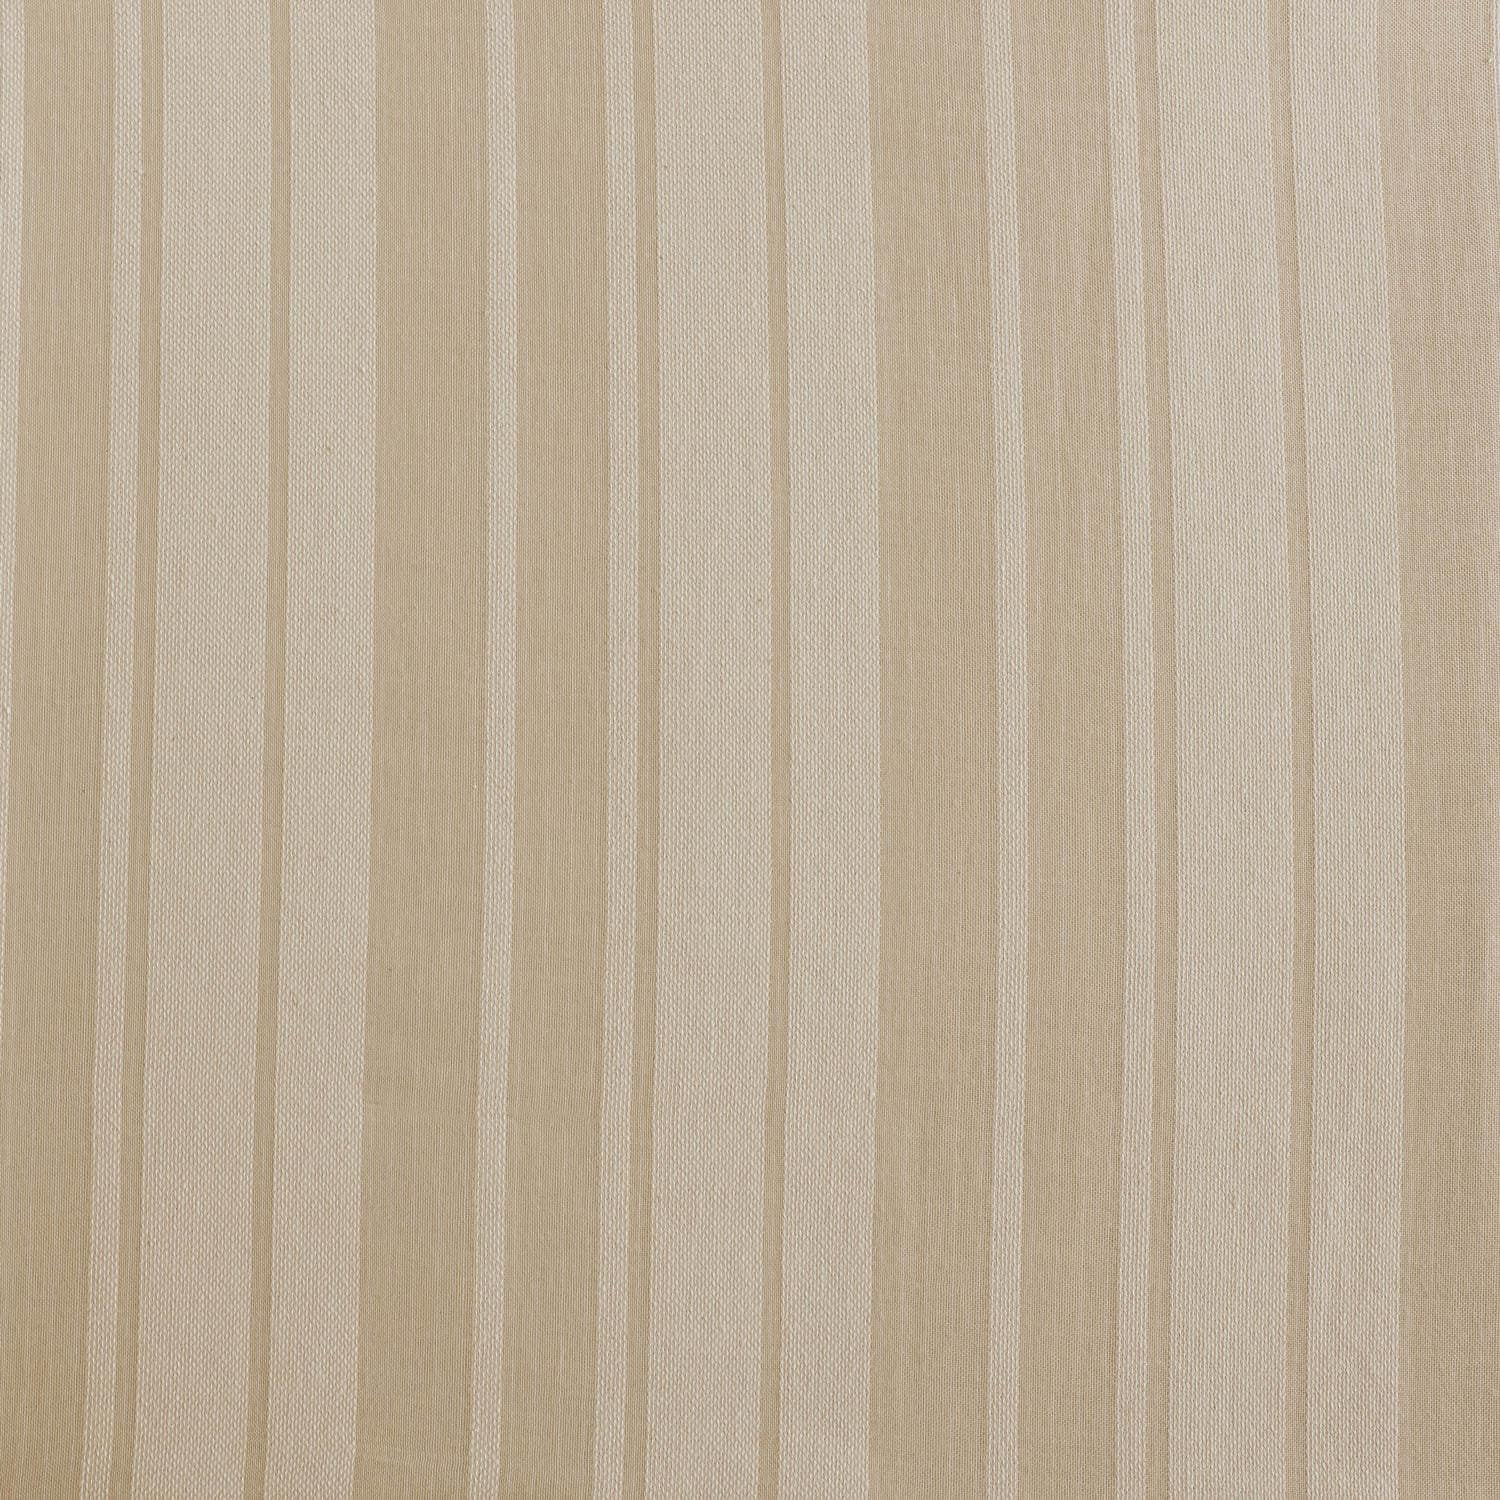 Cayman Natural Striped Linen Sheer Fabric